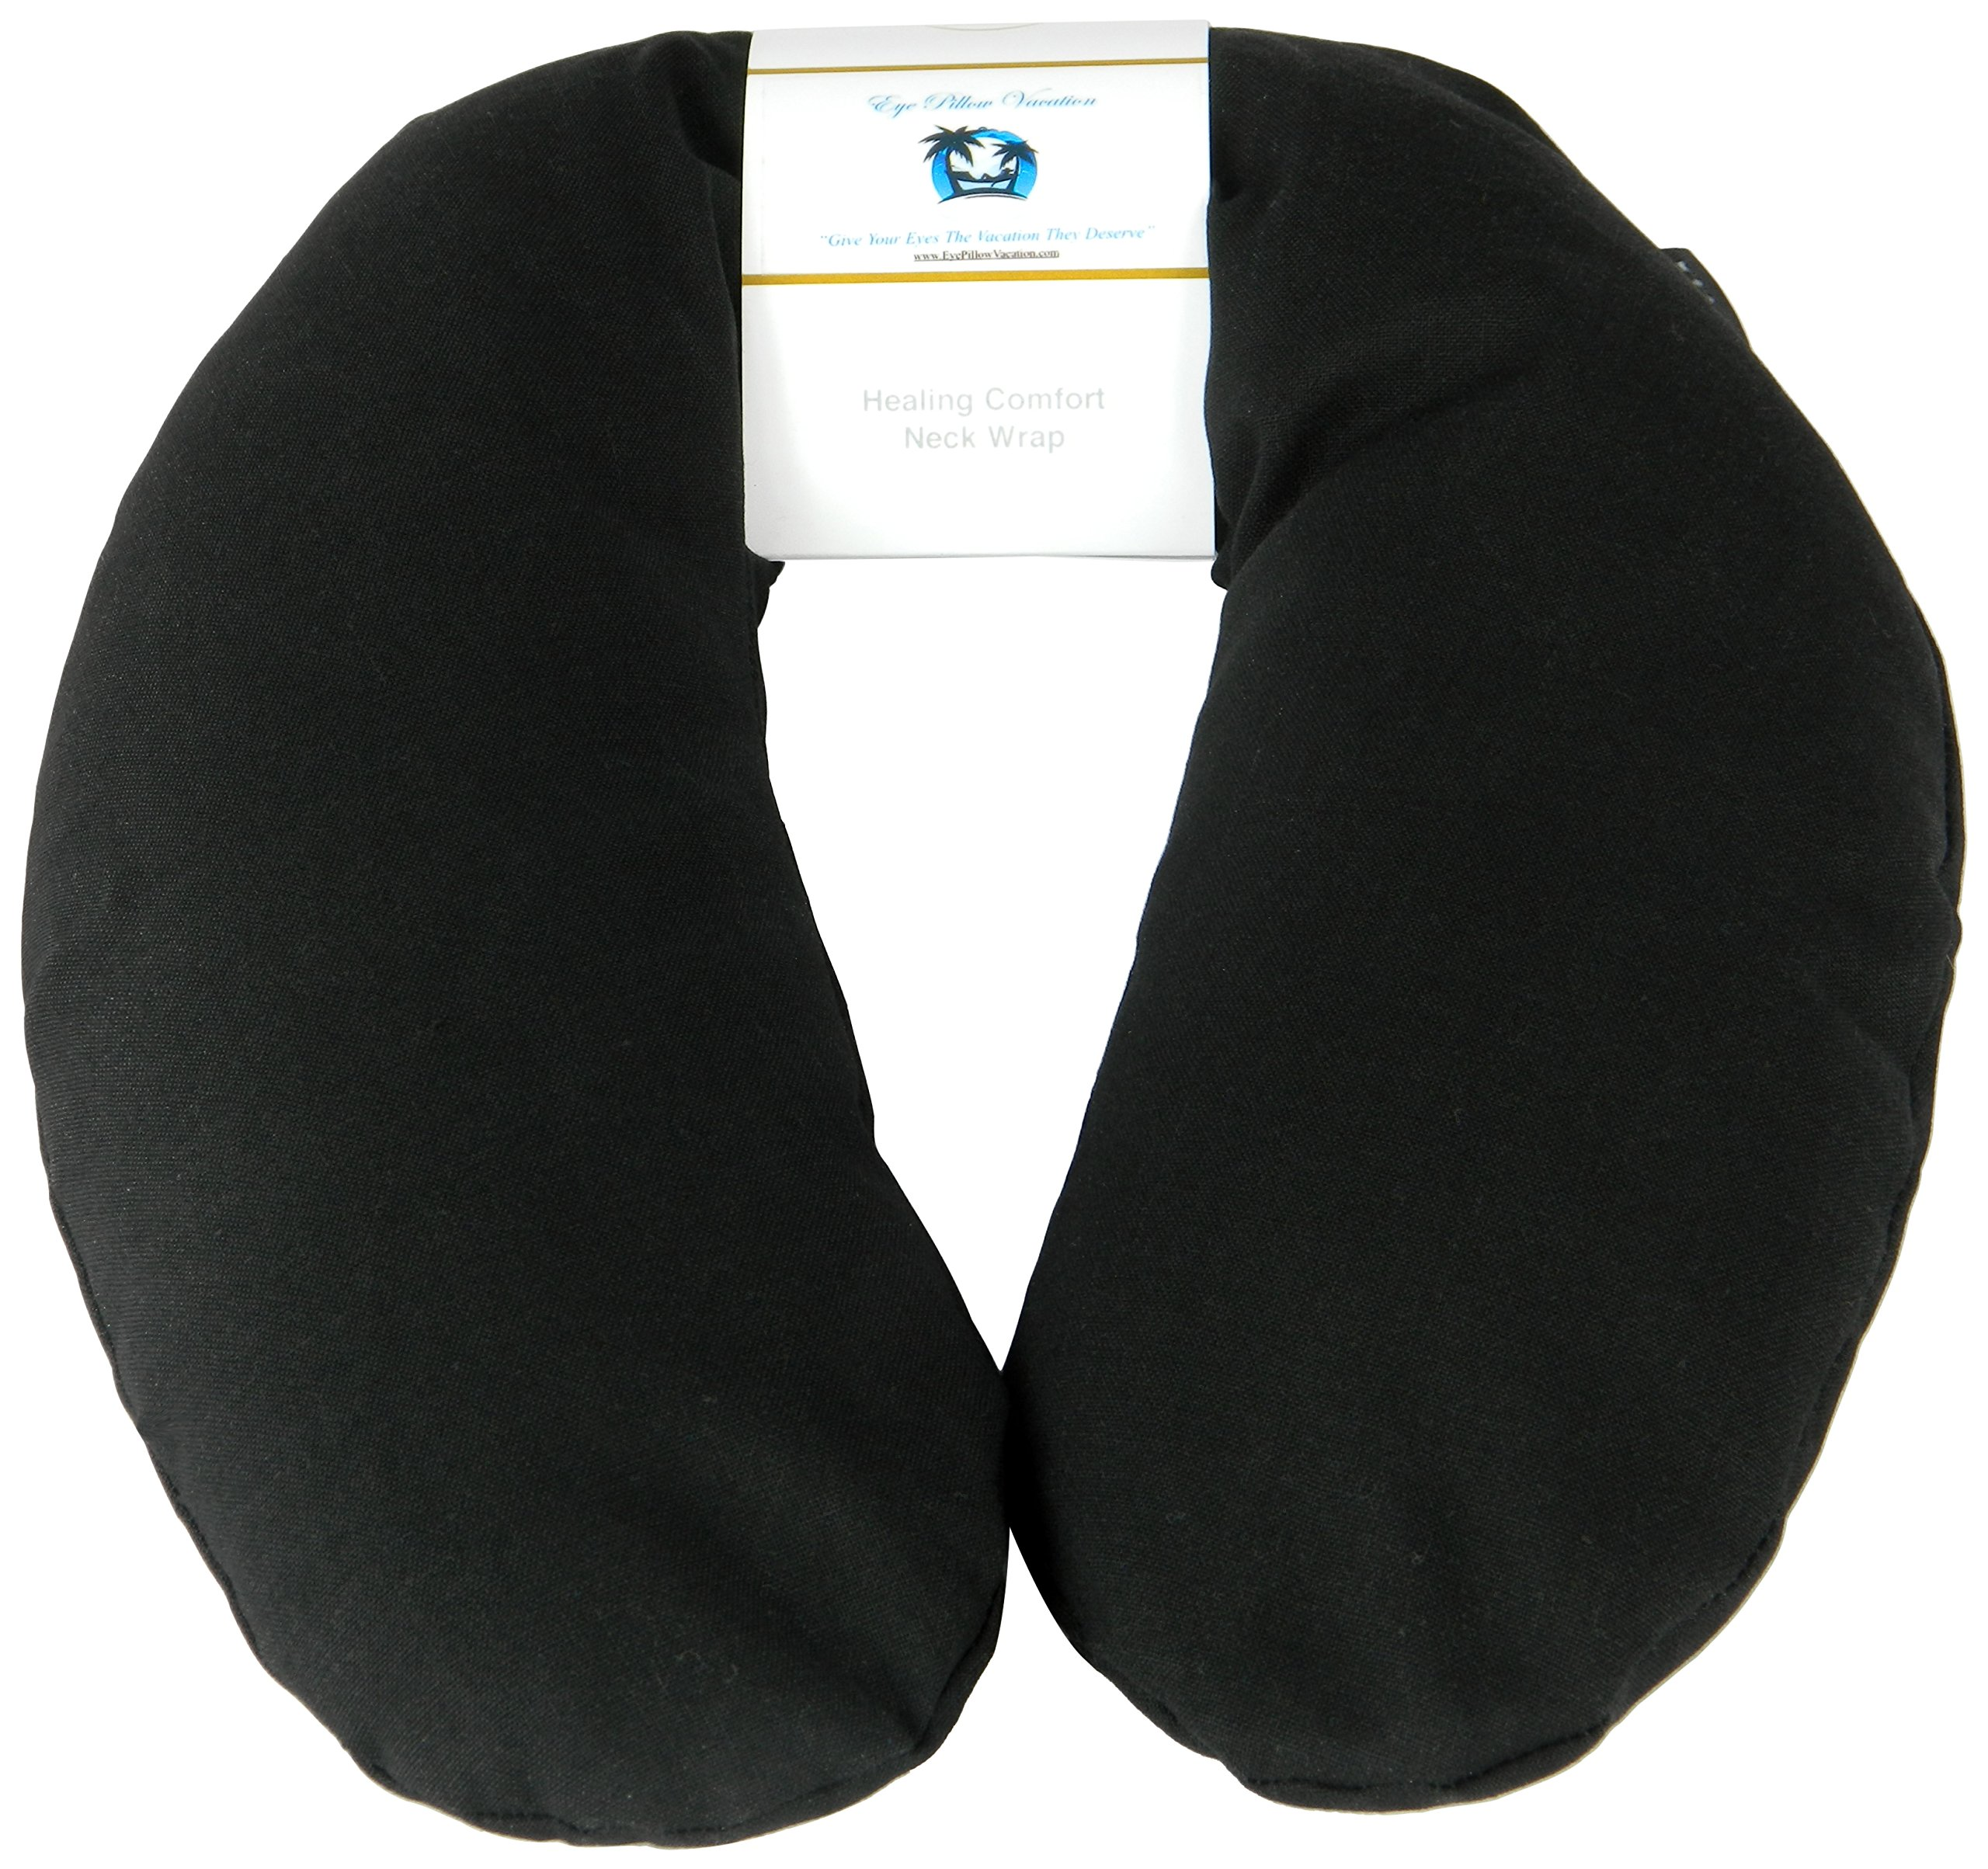 Neck Pain Relief Pillow - Hot / Cold Therapeutic Herbal Pillow For Shoulder & Neck Pain, Stress & Migraine Relief (Black - Organic Cotton)